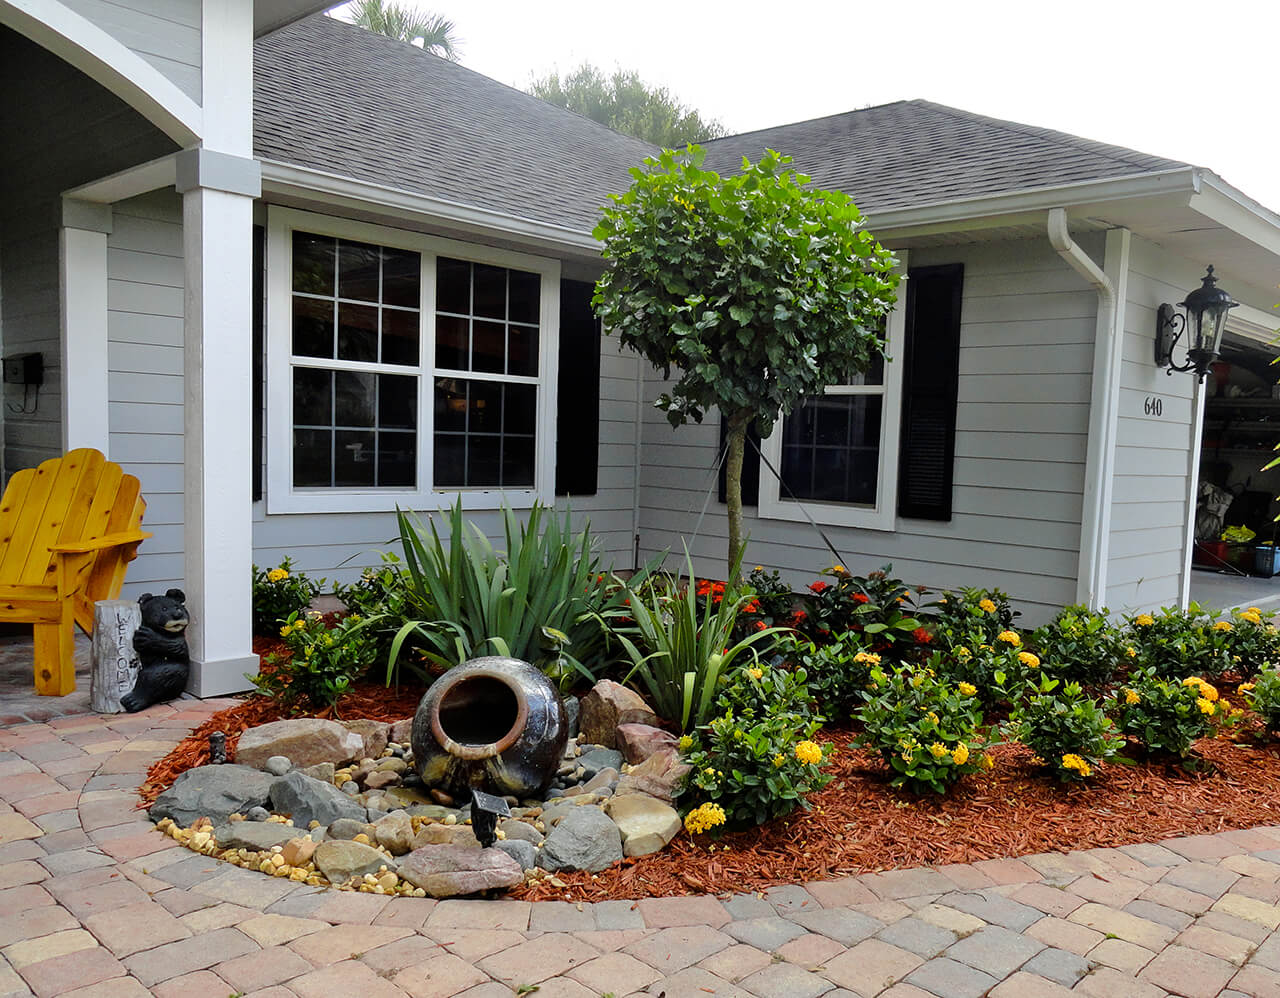 landscaping ideas for front yard 2. mini water